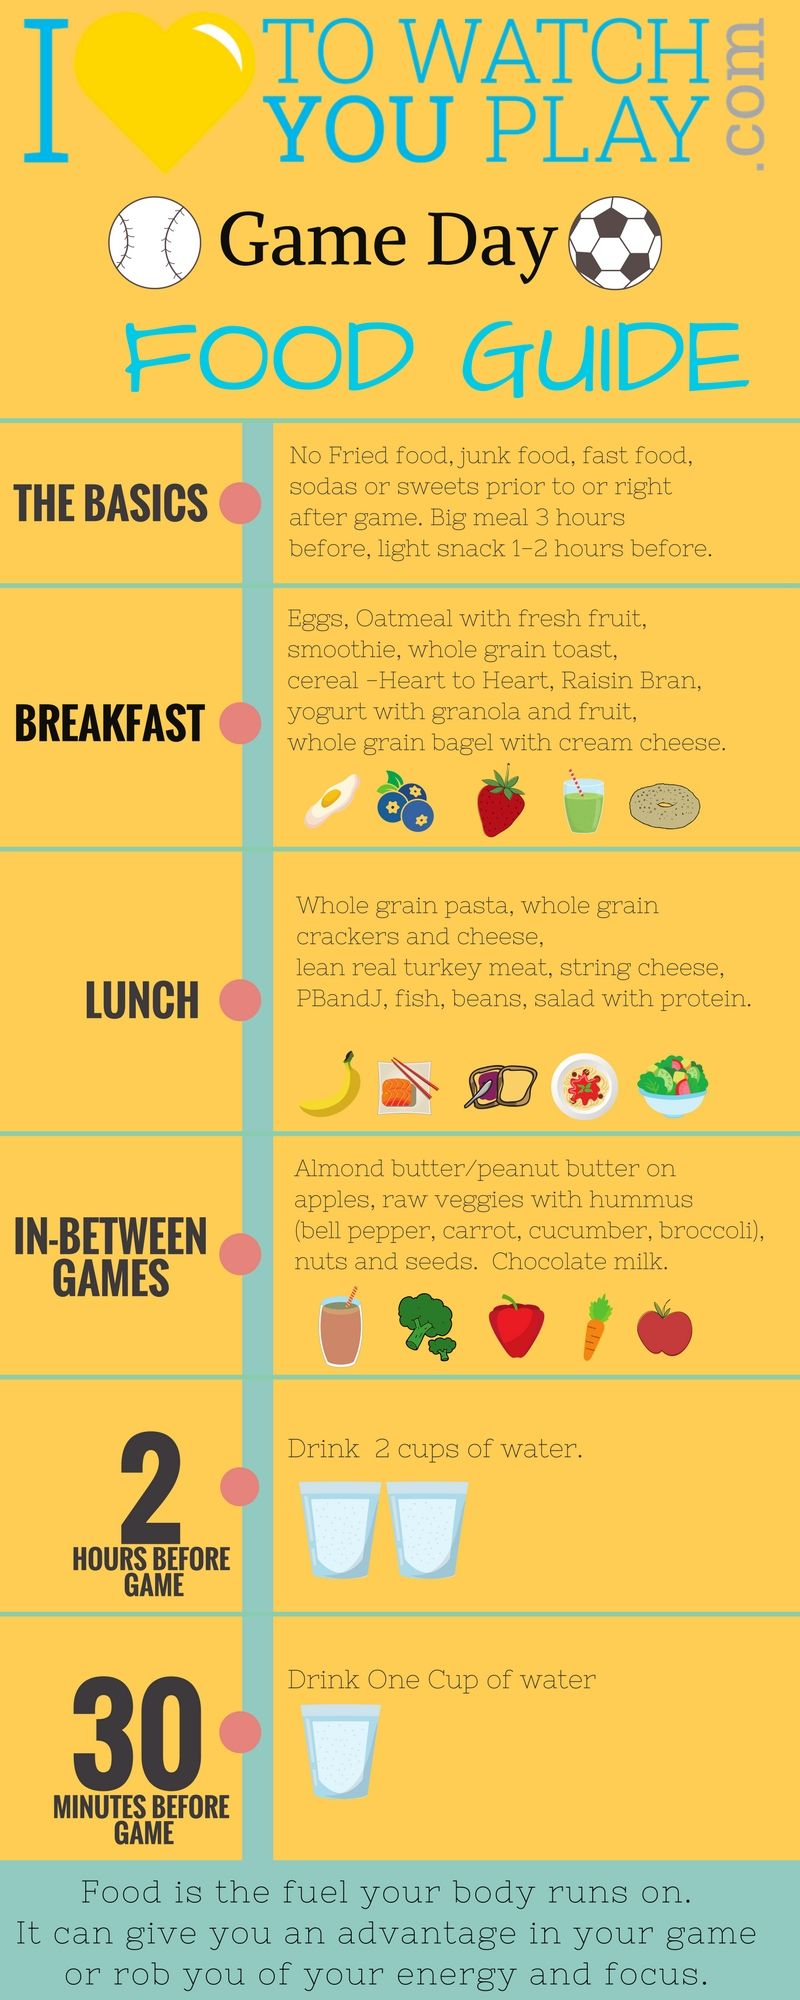 Food is fuel! Here's an easy guide to the best food options for your young athlete to consume on the day of a game. #athletefood